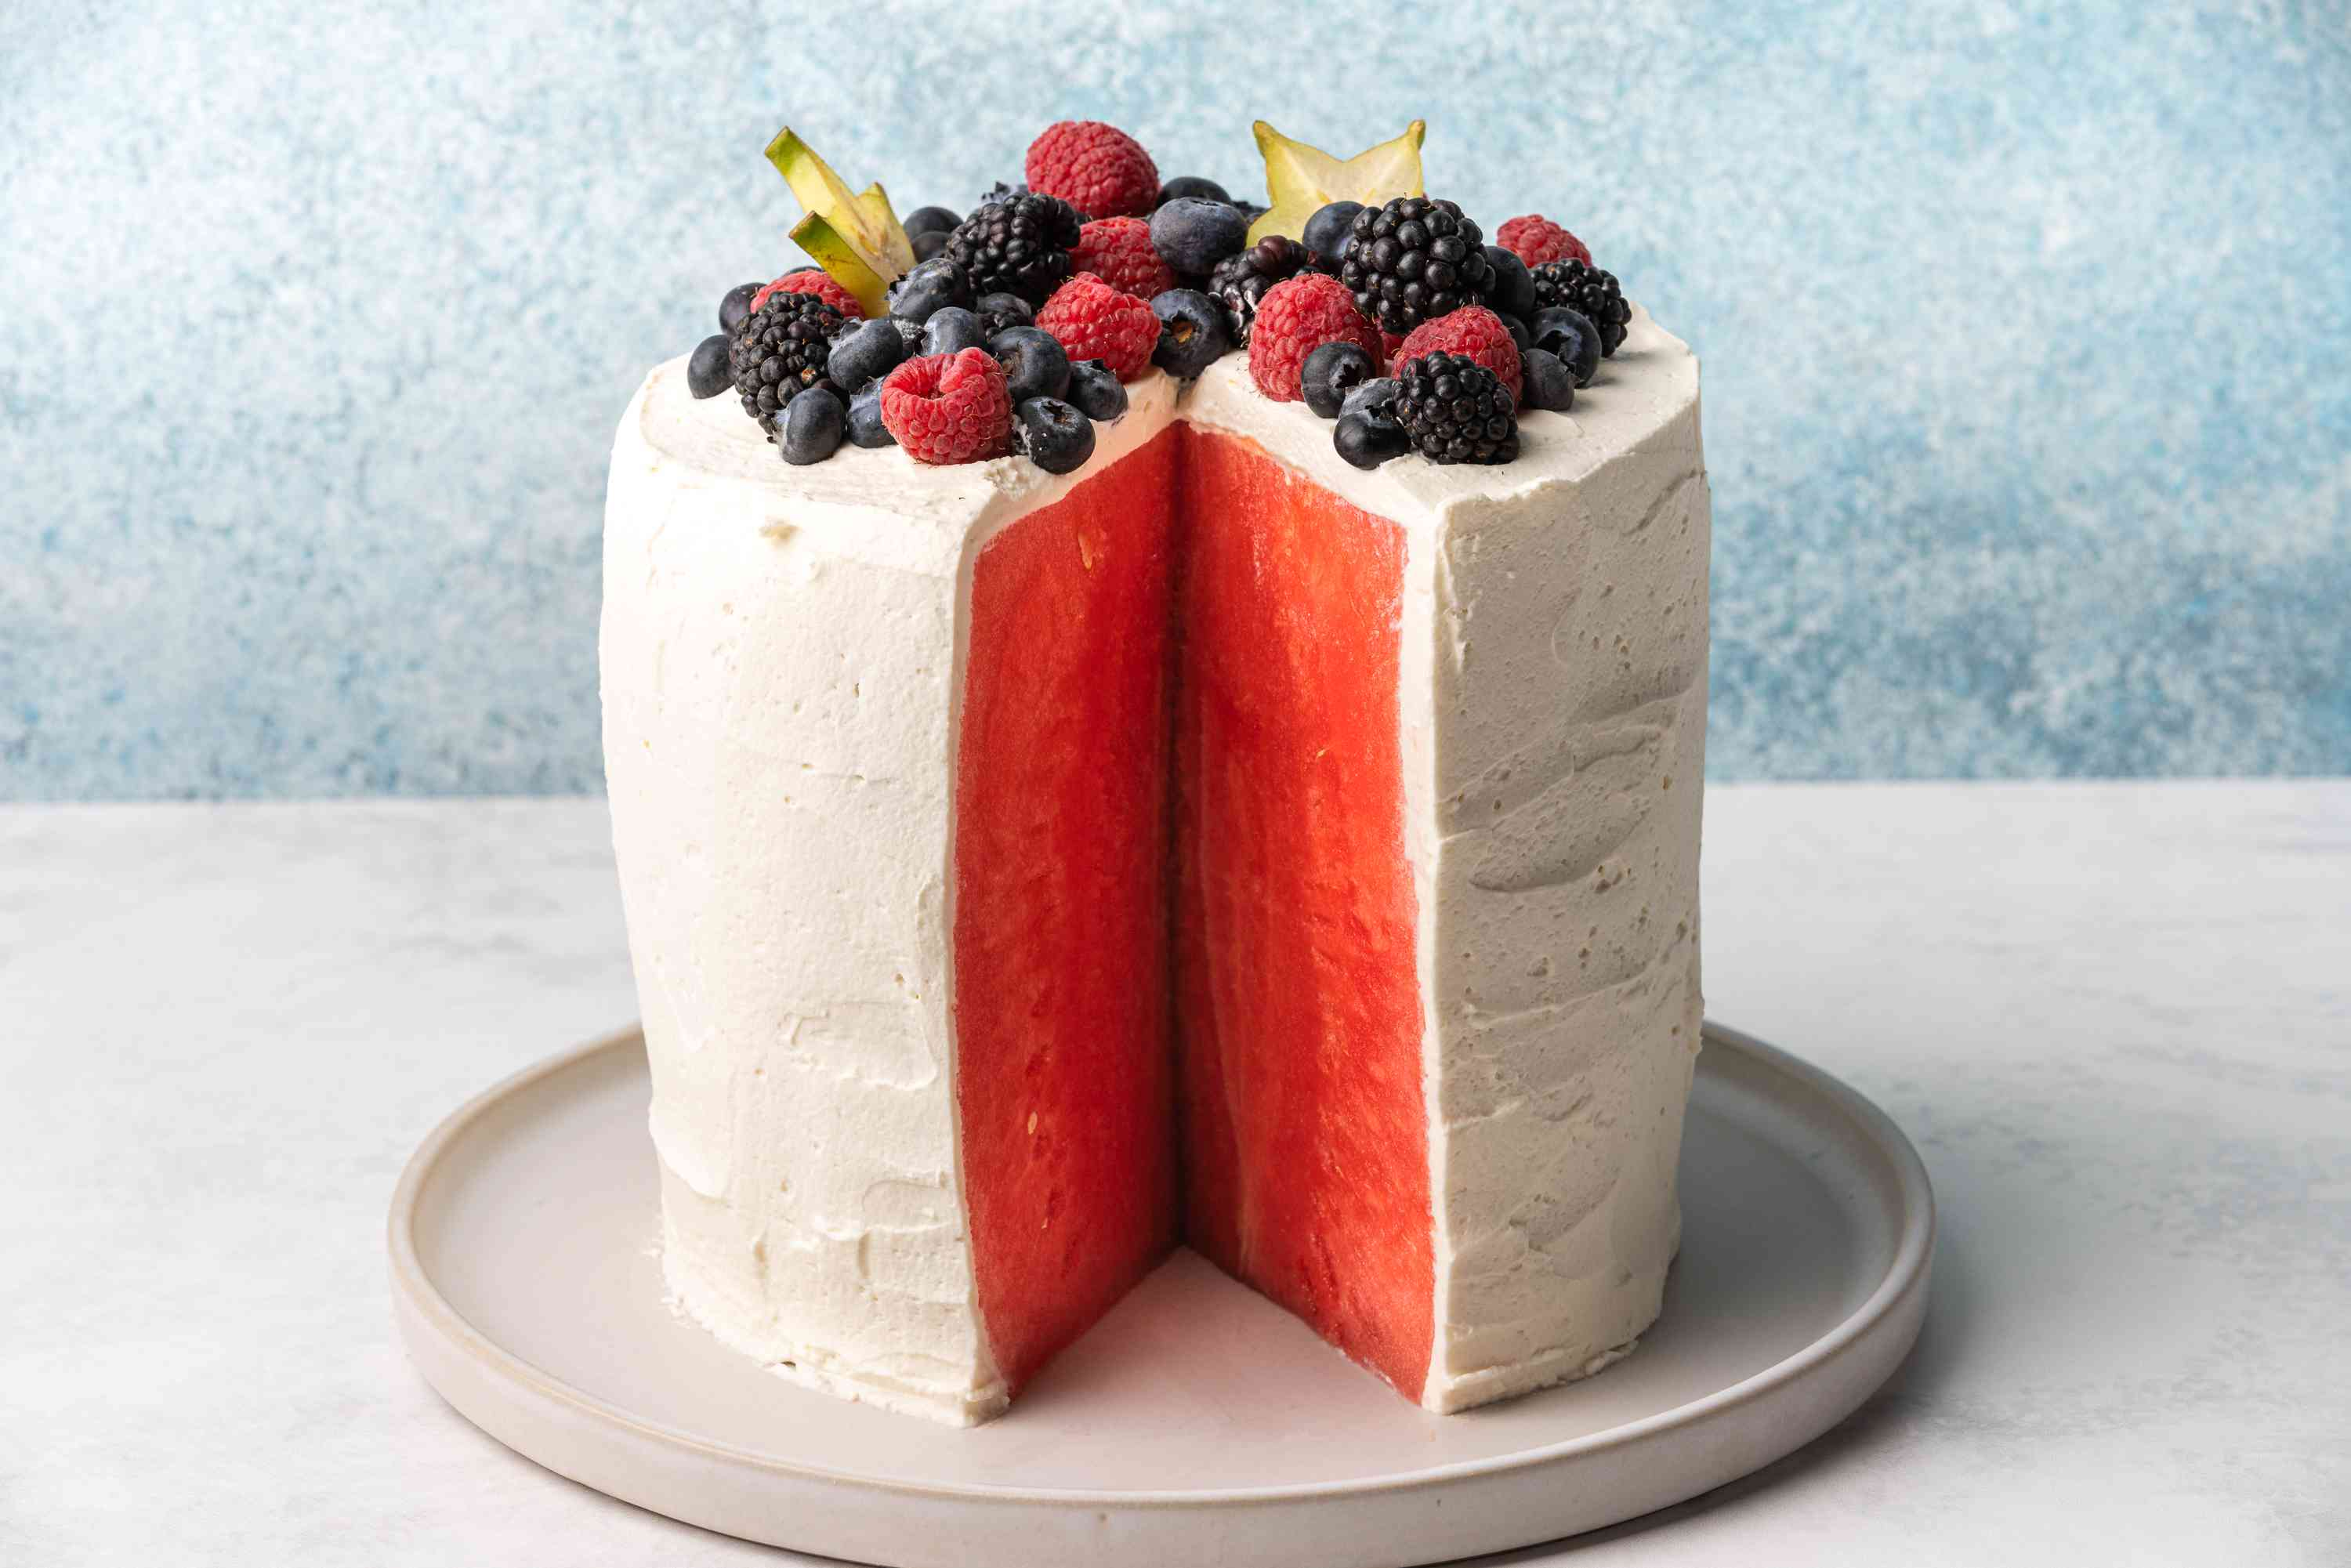 Watermelon Cake with a slice cut out